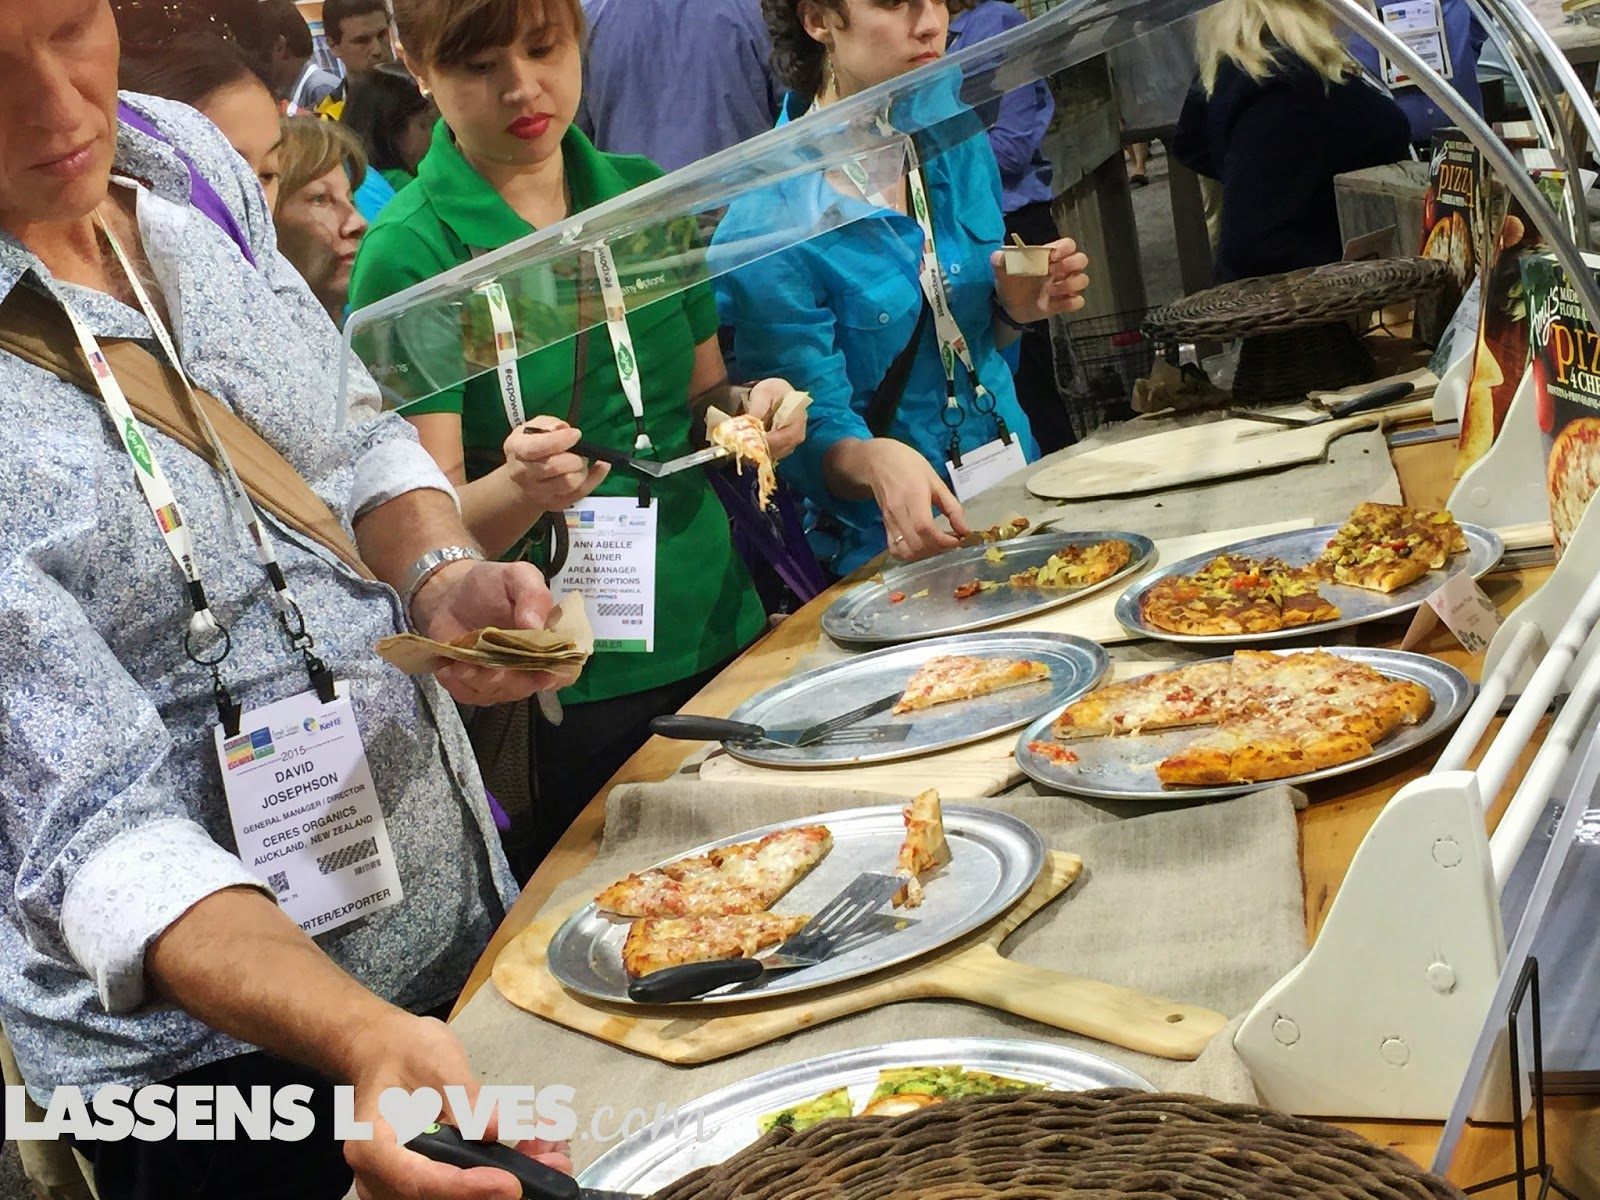 Expo+West+2015, Natural+Foods+Show, New+Natural+Products, Amy's+pizza, Amys+organics